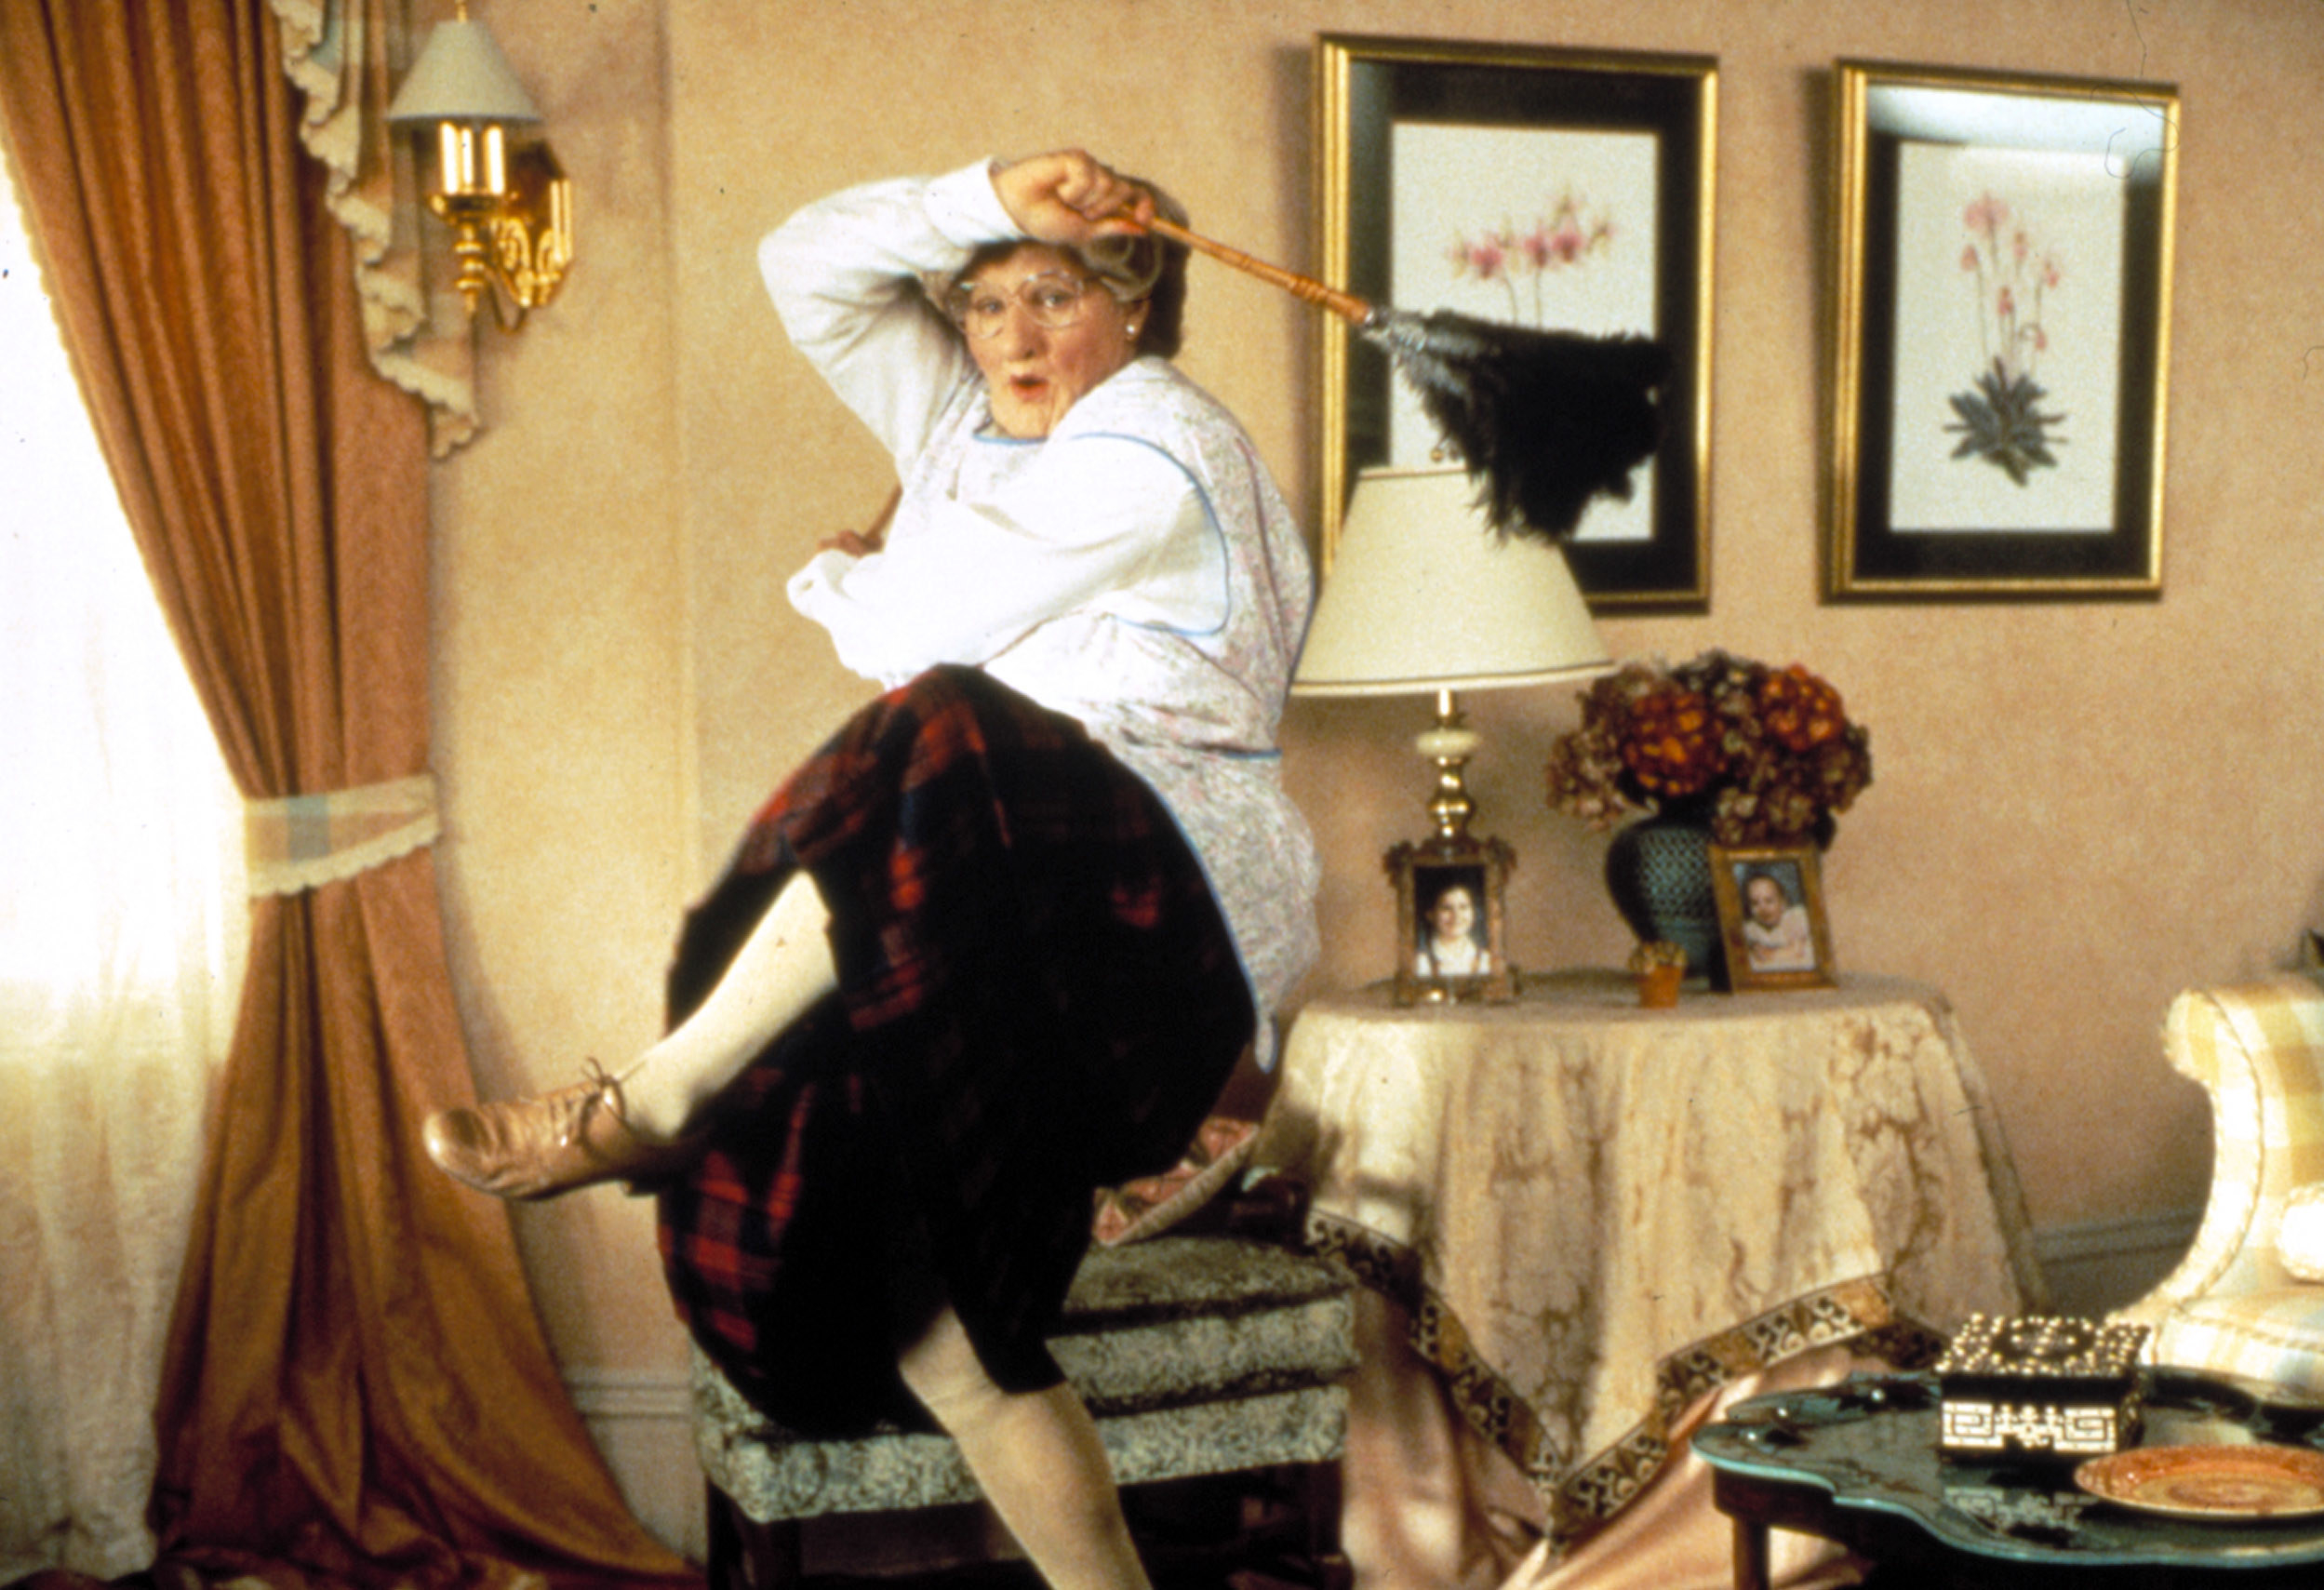 Robin Williams dances while dressed as an older woman nanny